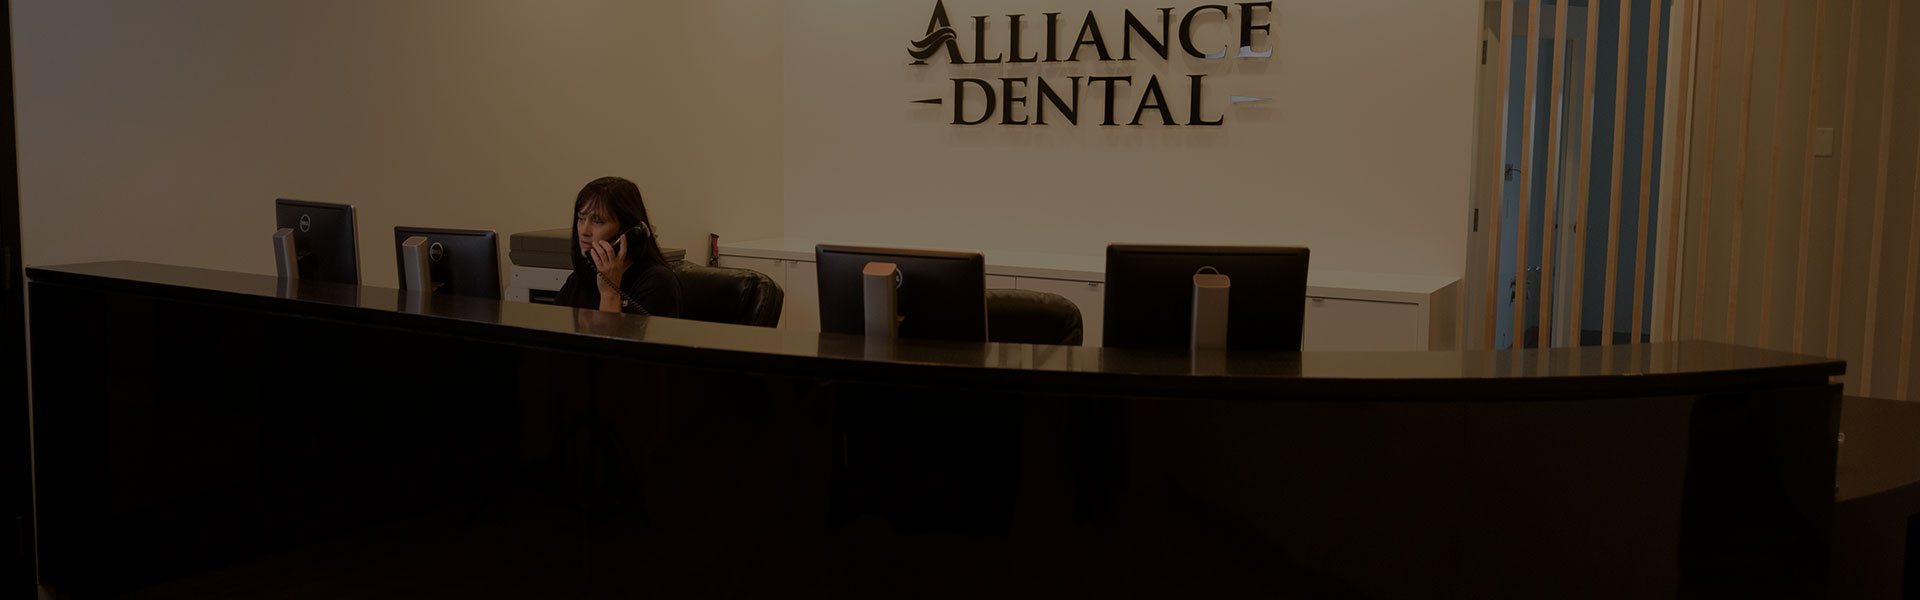 alliance dental reception west bedford